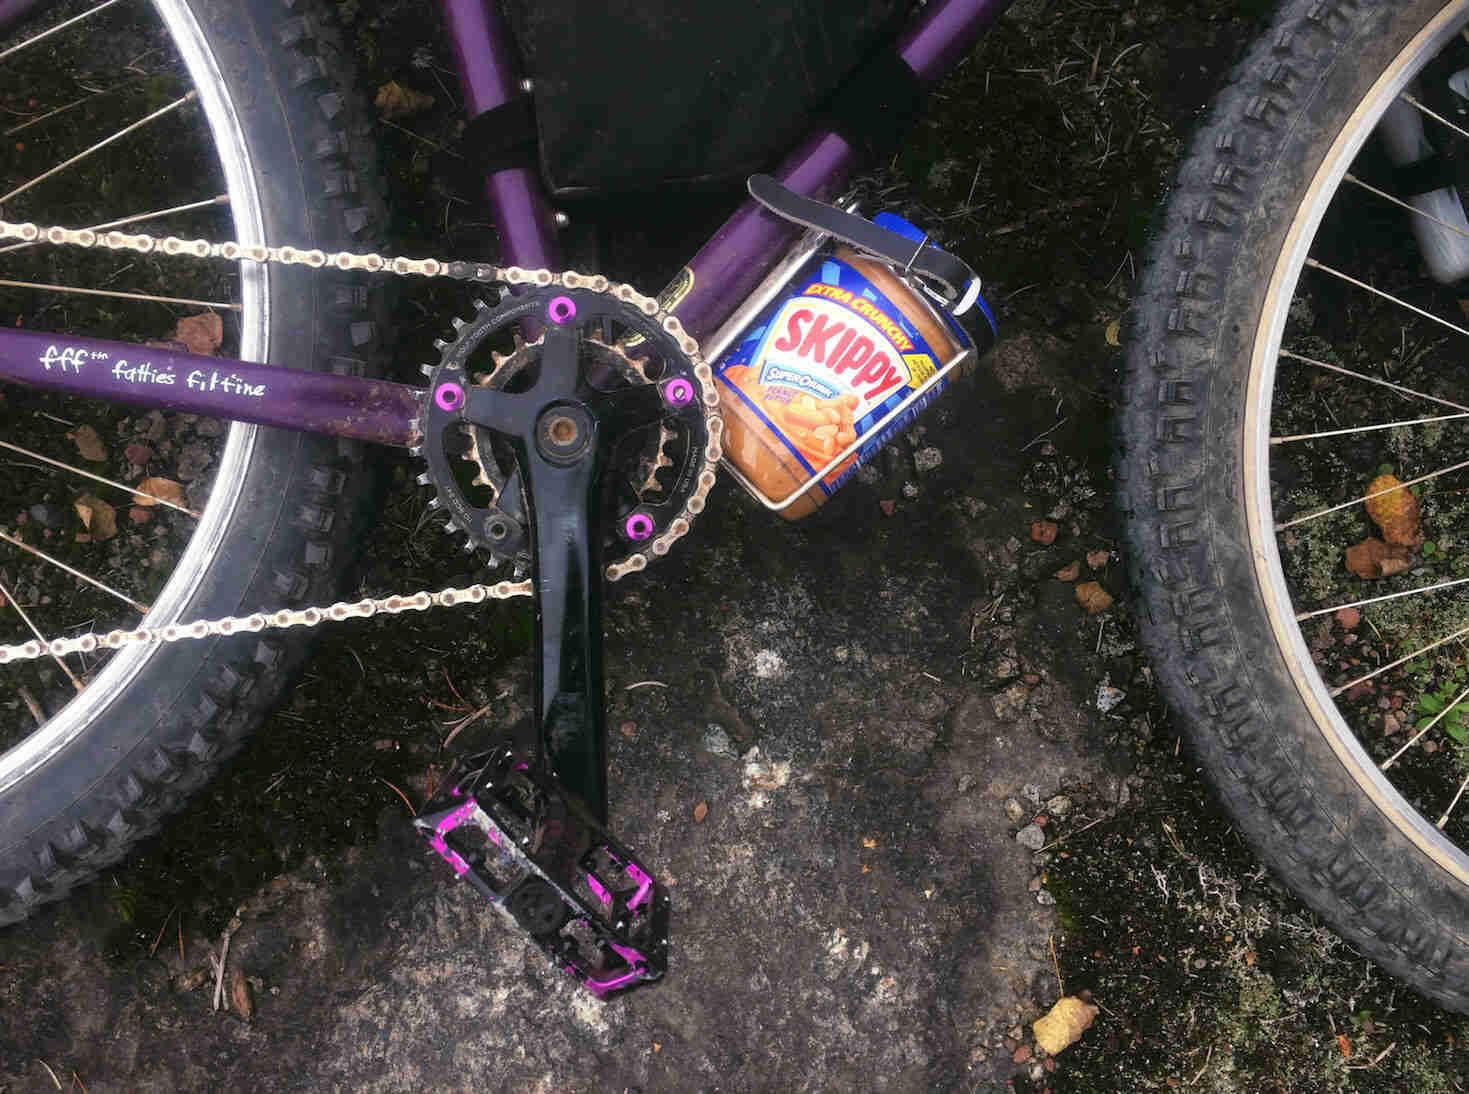 Downward view of the cranks and waterbottle cage with Skippy peanut butter jar, on a purple Surly bike on it's left side